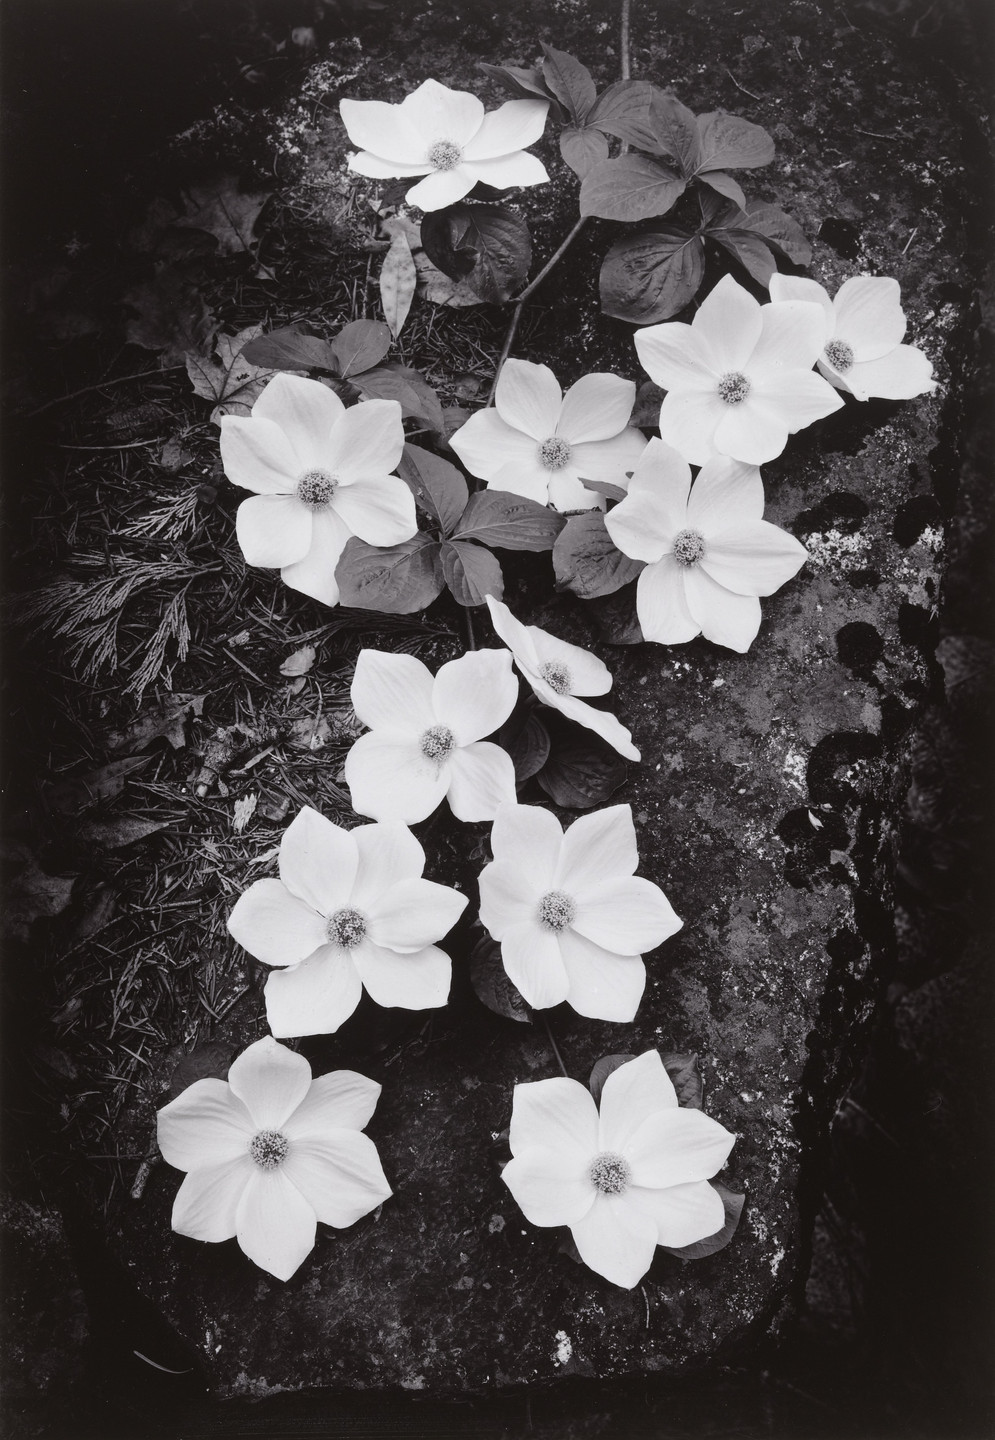 Ansel Adams. Dogwood Blossoms. 1938